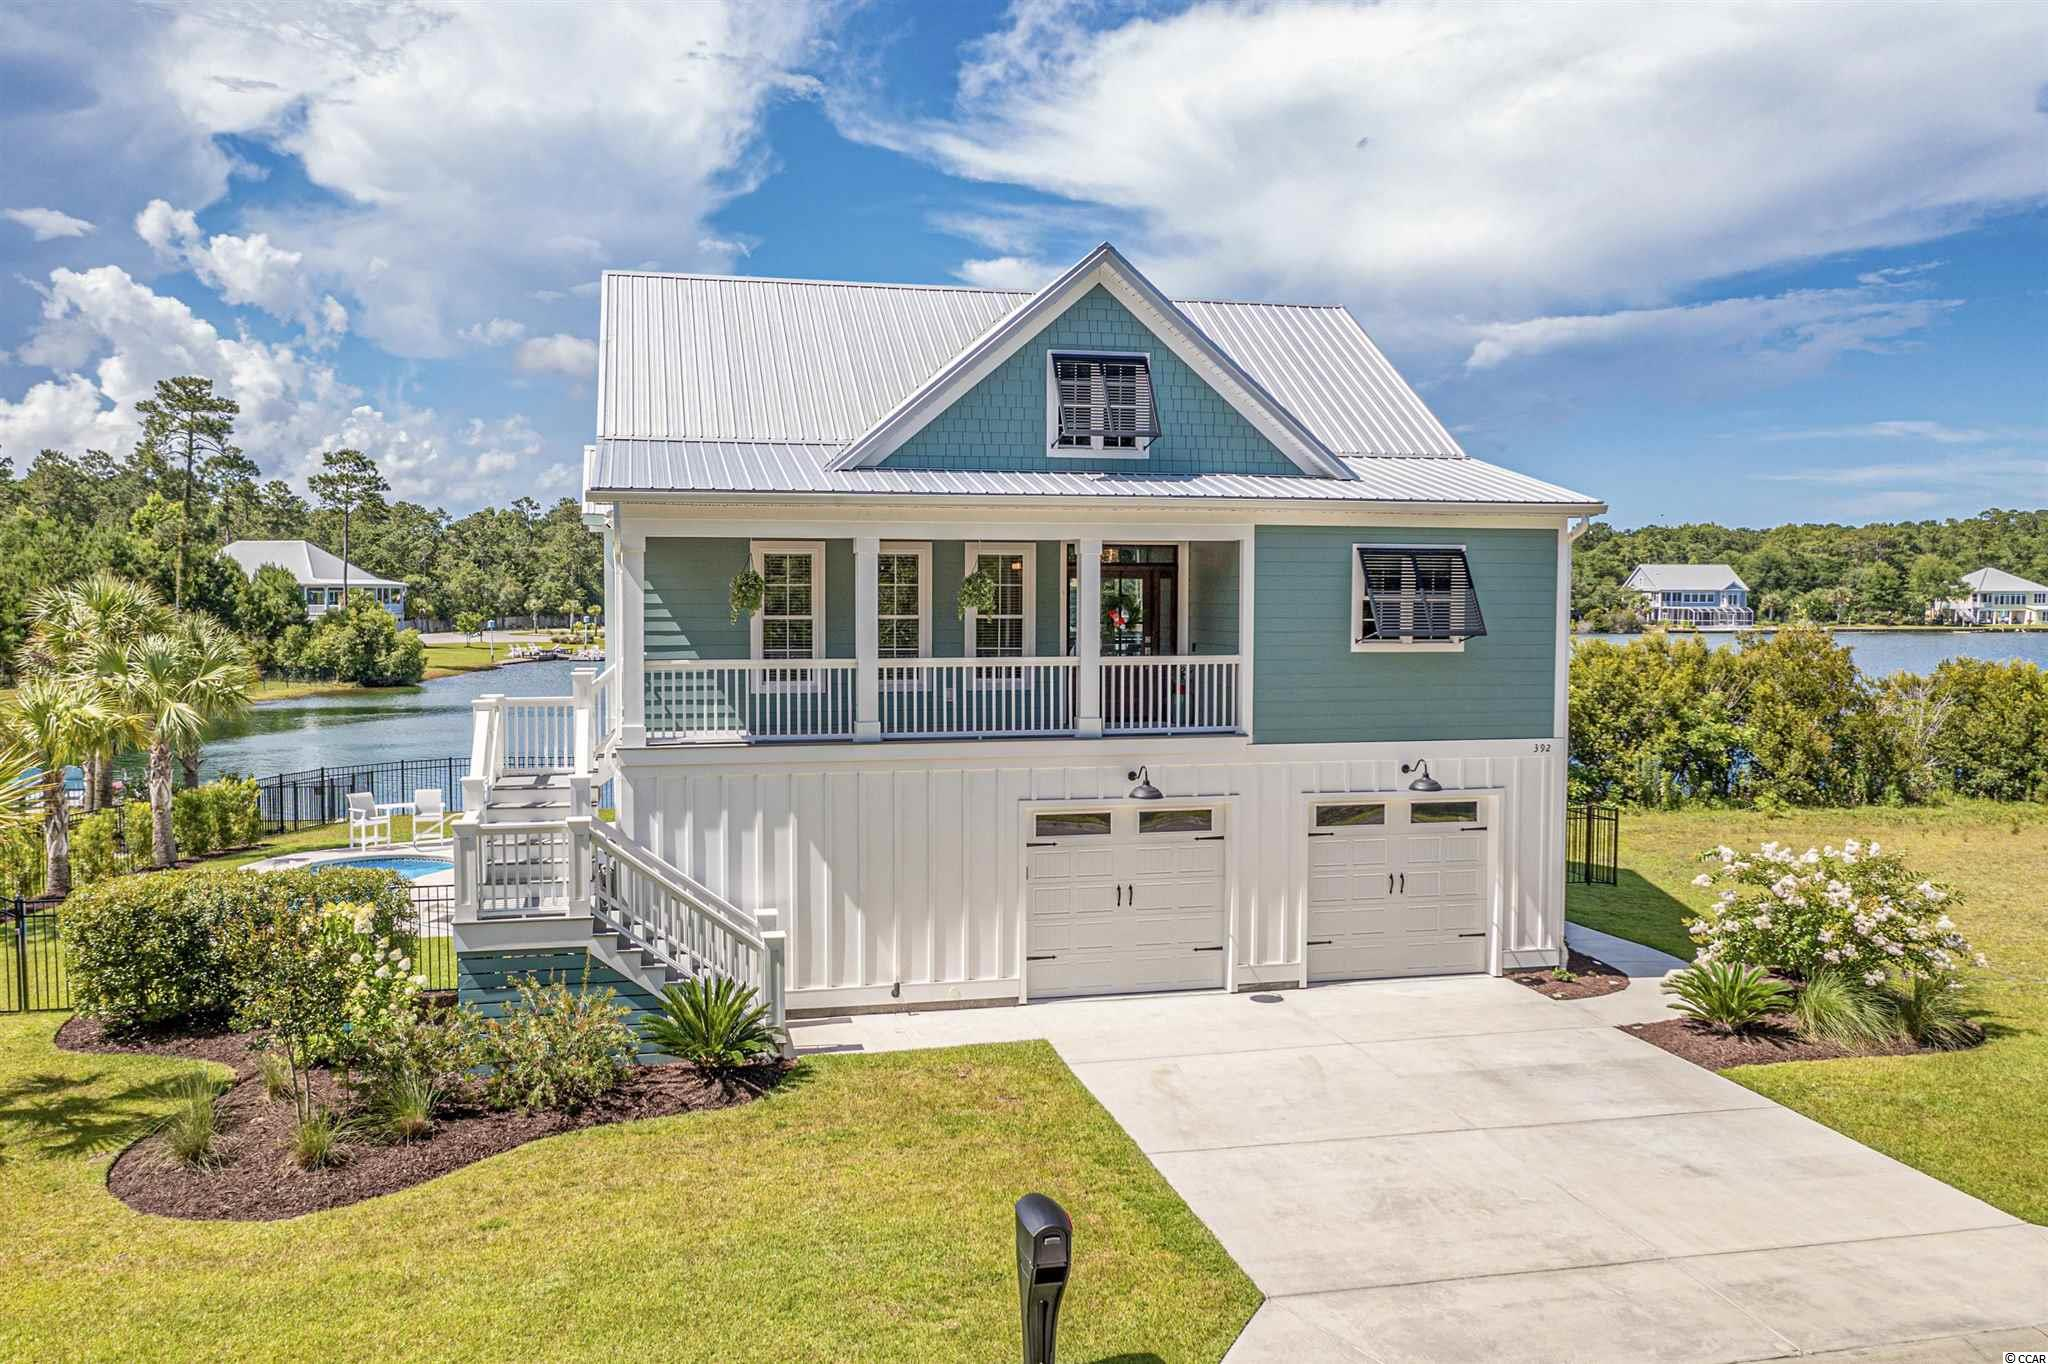 Rare gem, a modern coastal oasis on pristine, private lake! Who said you can't have it all? Live, work, entertain, and play in a custom built, modern coastal style house on a 20-acre, spring-fed lake located in a private gated community only minutes from Murrells Inlet's famous Marshwalk, Huntington Beach State Park, and Brookgreen Gardens! Only two years old and meticulously maintained, the owners created an oasis with high-end furnishings in a fusion of raised beach style and mid-century modern design. Spectacular lakeside living with a private dock, in-ground pool, hot tub, and endless outdoor entertainment possibilities with enough seating to easily accommodate 28. The lake views from the upper level kitchen, great room, and screened porch are simply breathtaking! Nine foot ceilings and crown molding on both levels, the great room on the upper level features a dual tray ceiling, luxury vinyl flooring, a custom shiplap accent wall, and more. The kitchen is stunning with quartz countertops, stainless steel appliances throughout, custom cabinetry plus, so much more. Propane tank for the kitchen's cooktop and an outdoor grill. Wait to see the custom laundry room where everything imaginable has been added for high utility use without compromising aesthetic and design! The lower level features two guest bedrooms, one with a built-in Murphy bed and workspace. The other guest bedroom and the large flex space with kitchenette overlook the lower porch and lake. The large, finished two-car garage has additional space for a golf cart or for extra storage. This home was built to last with exterior HardiePlank siding and a metal roof for durability and energy efficiency. You will be impressed with the condition and many upgrades on this turnkey, move-in ready, fully furnished property. Schedule your showing today!